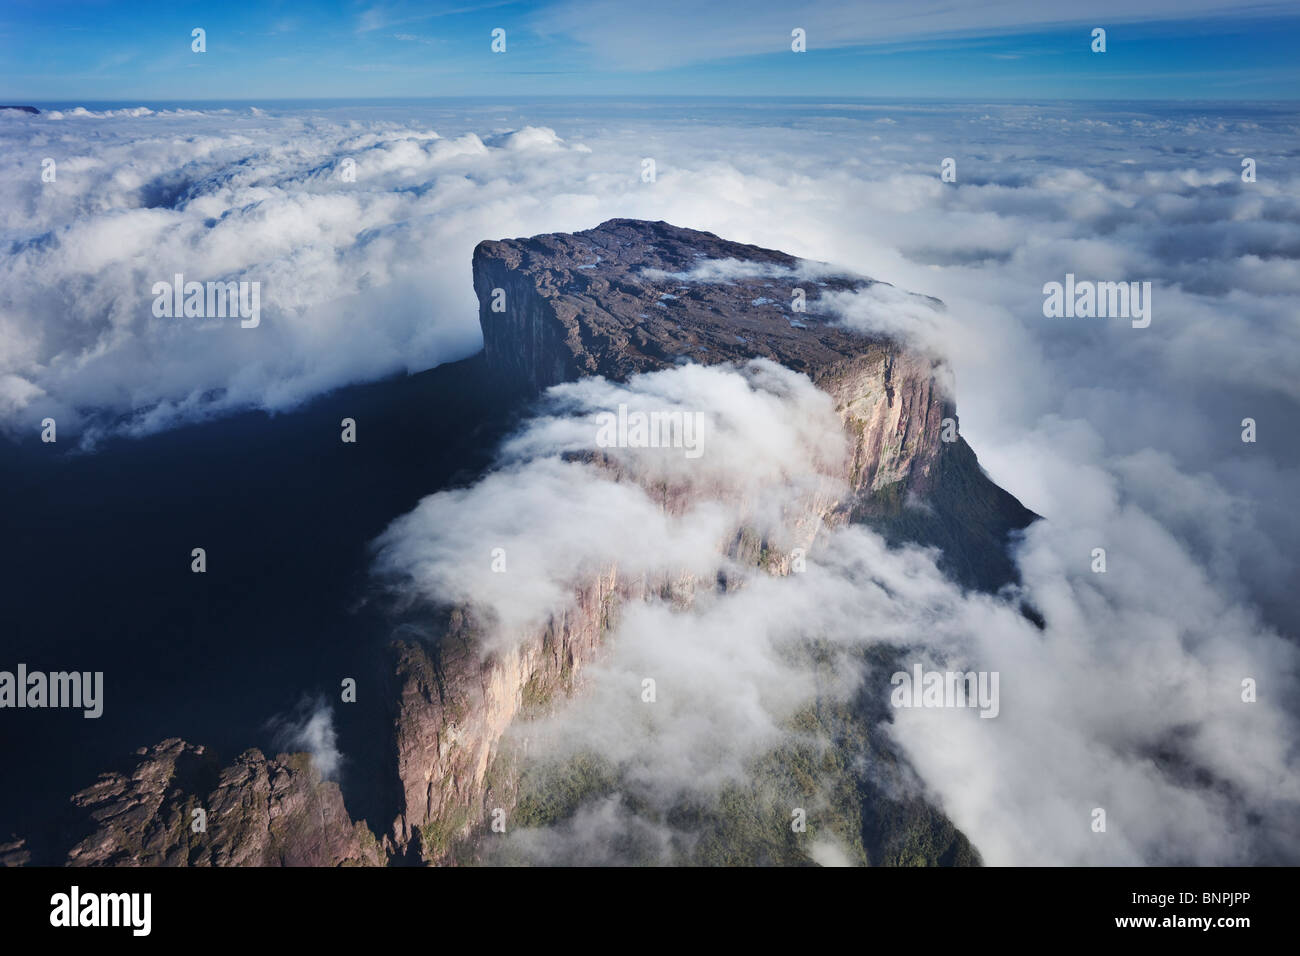 Aerial view Mount Roraima is the highest tepui reaching 2810 meters in elevation. Cloud covered flat top mountains. - Stock Image